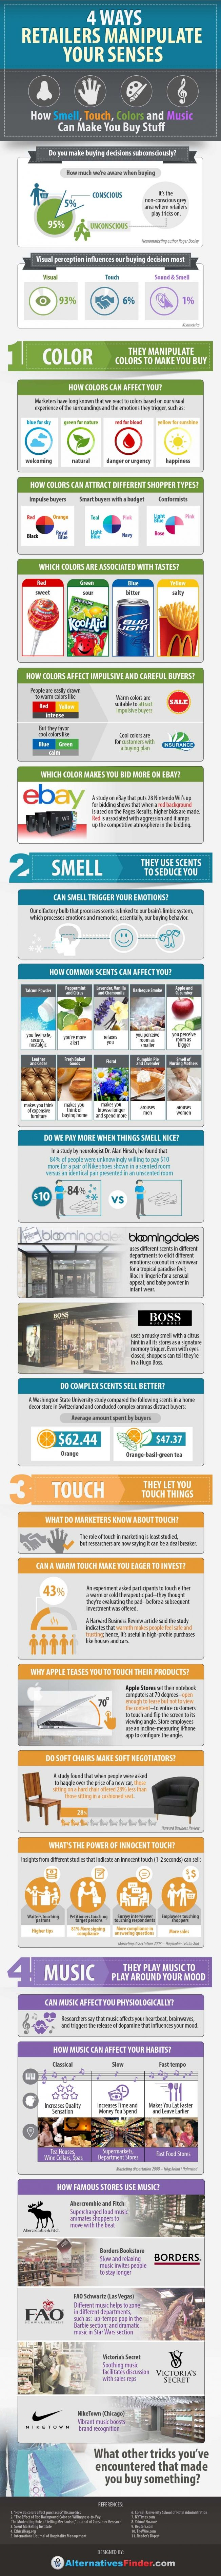 Infographic: How Retailers Subconsciously Sway Your Senses to Make You Buy More Stuff | Adweek